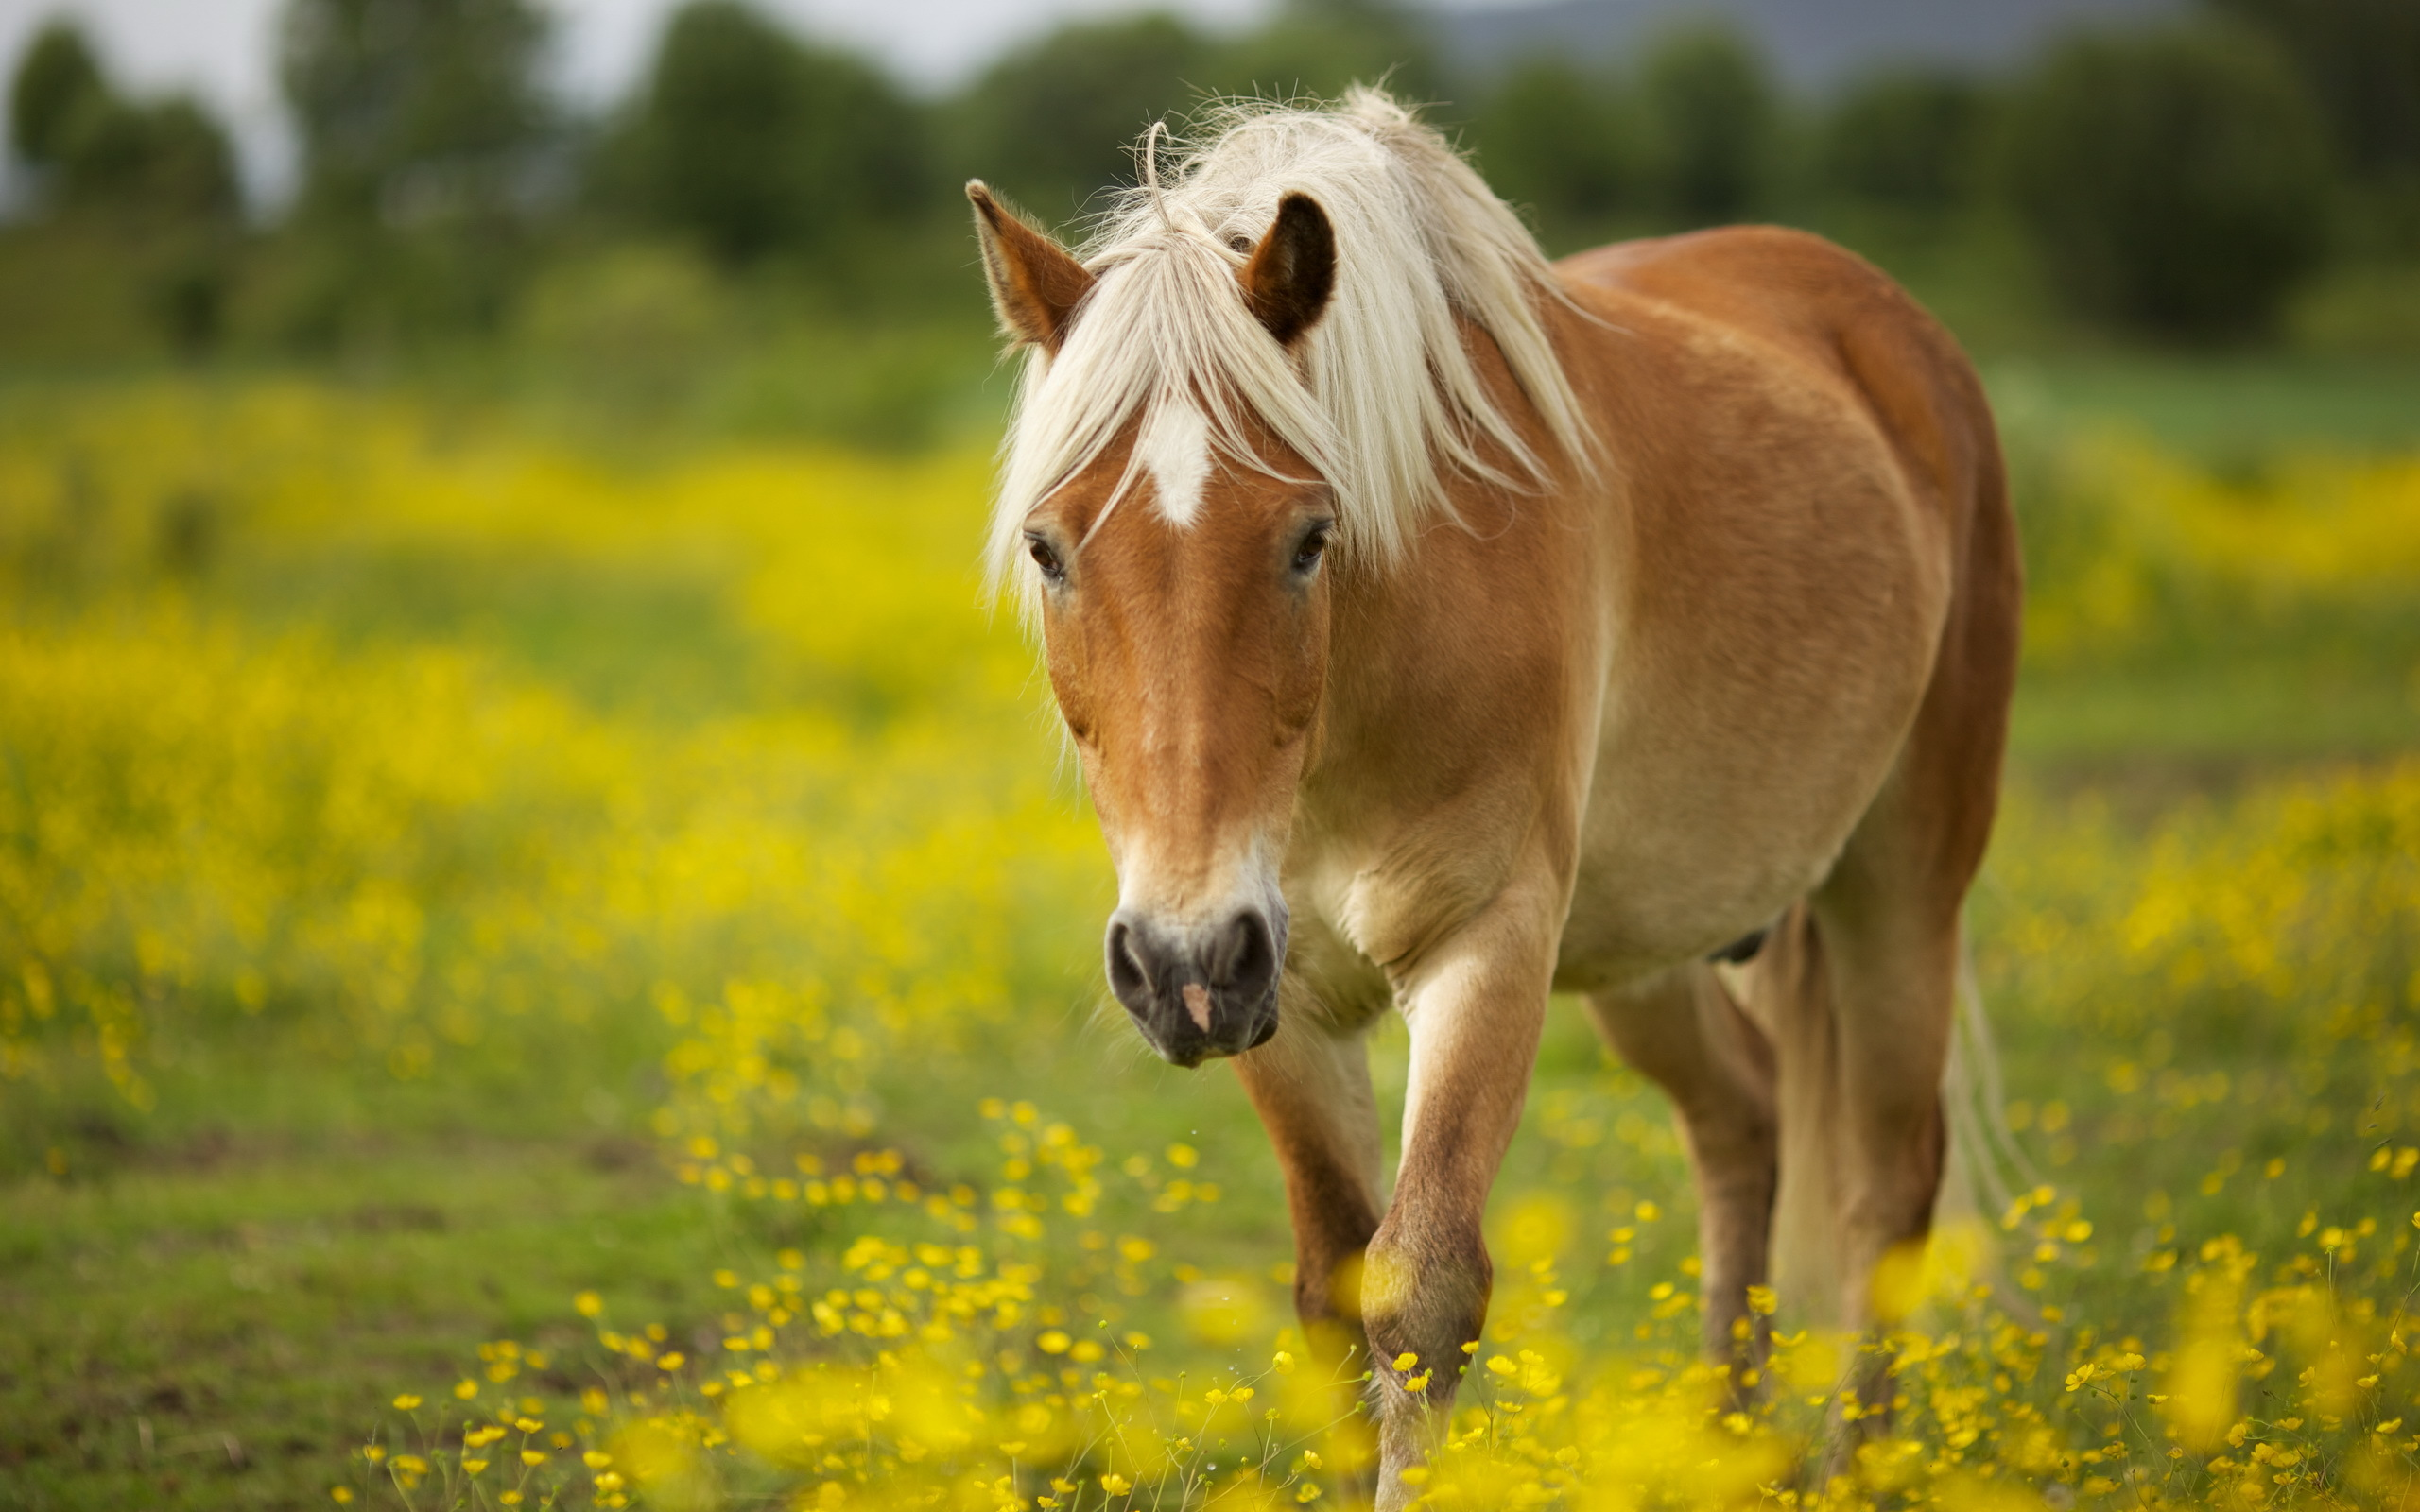 horse full hd wallpaper and background image | 2560x1600 | id:420090